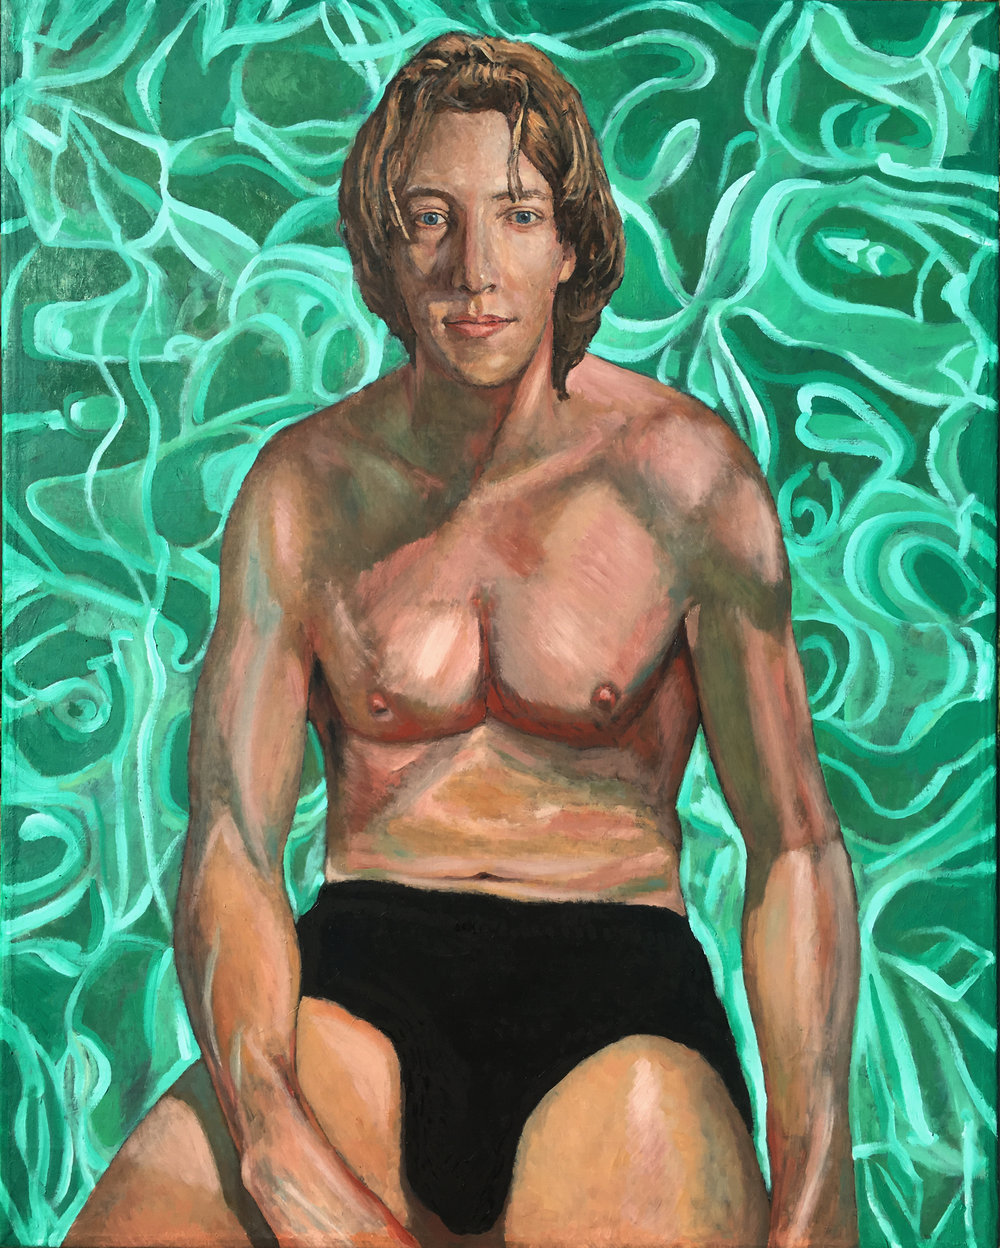 Self Portrait as Swimmer 2018